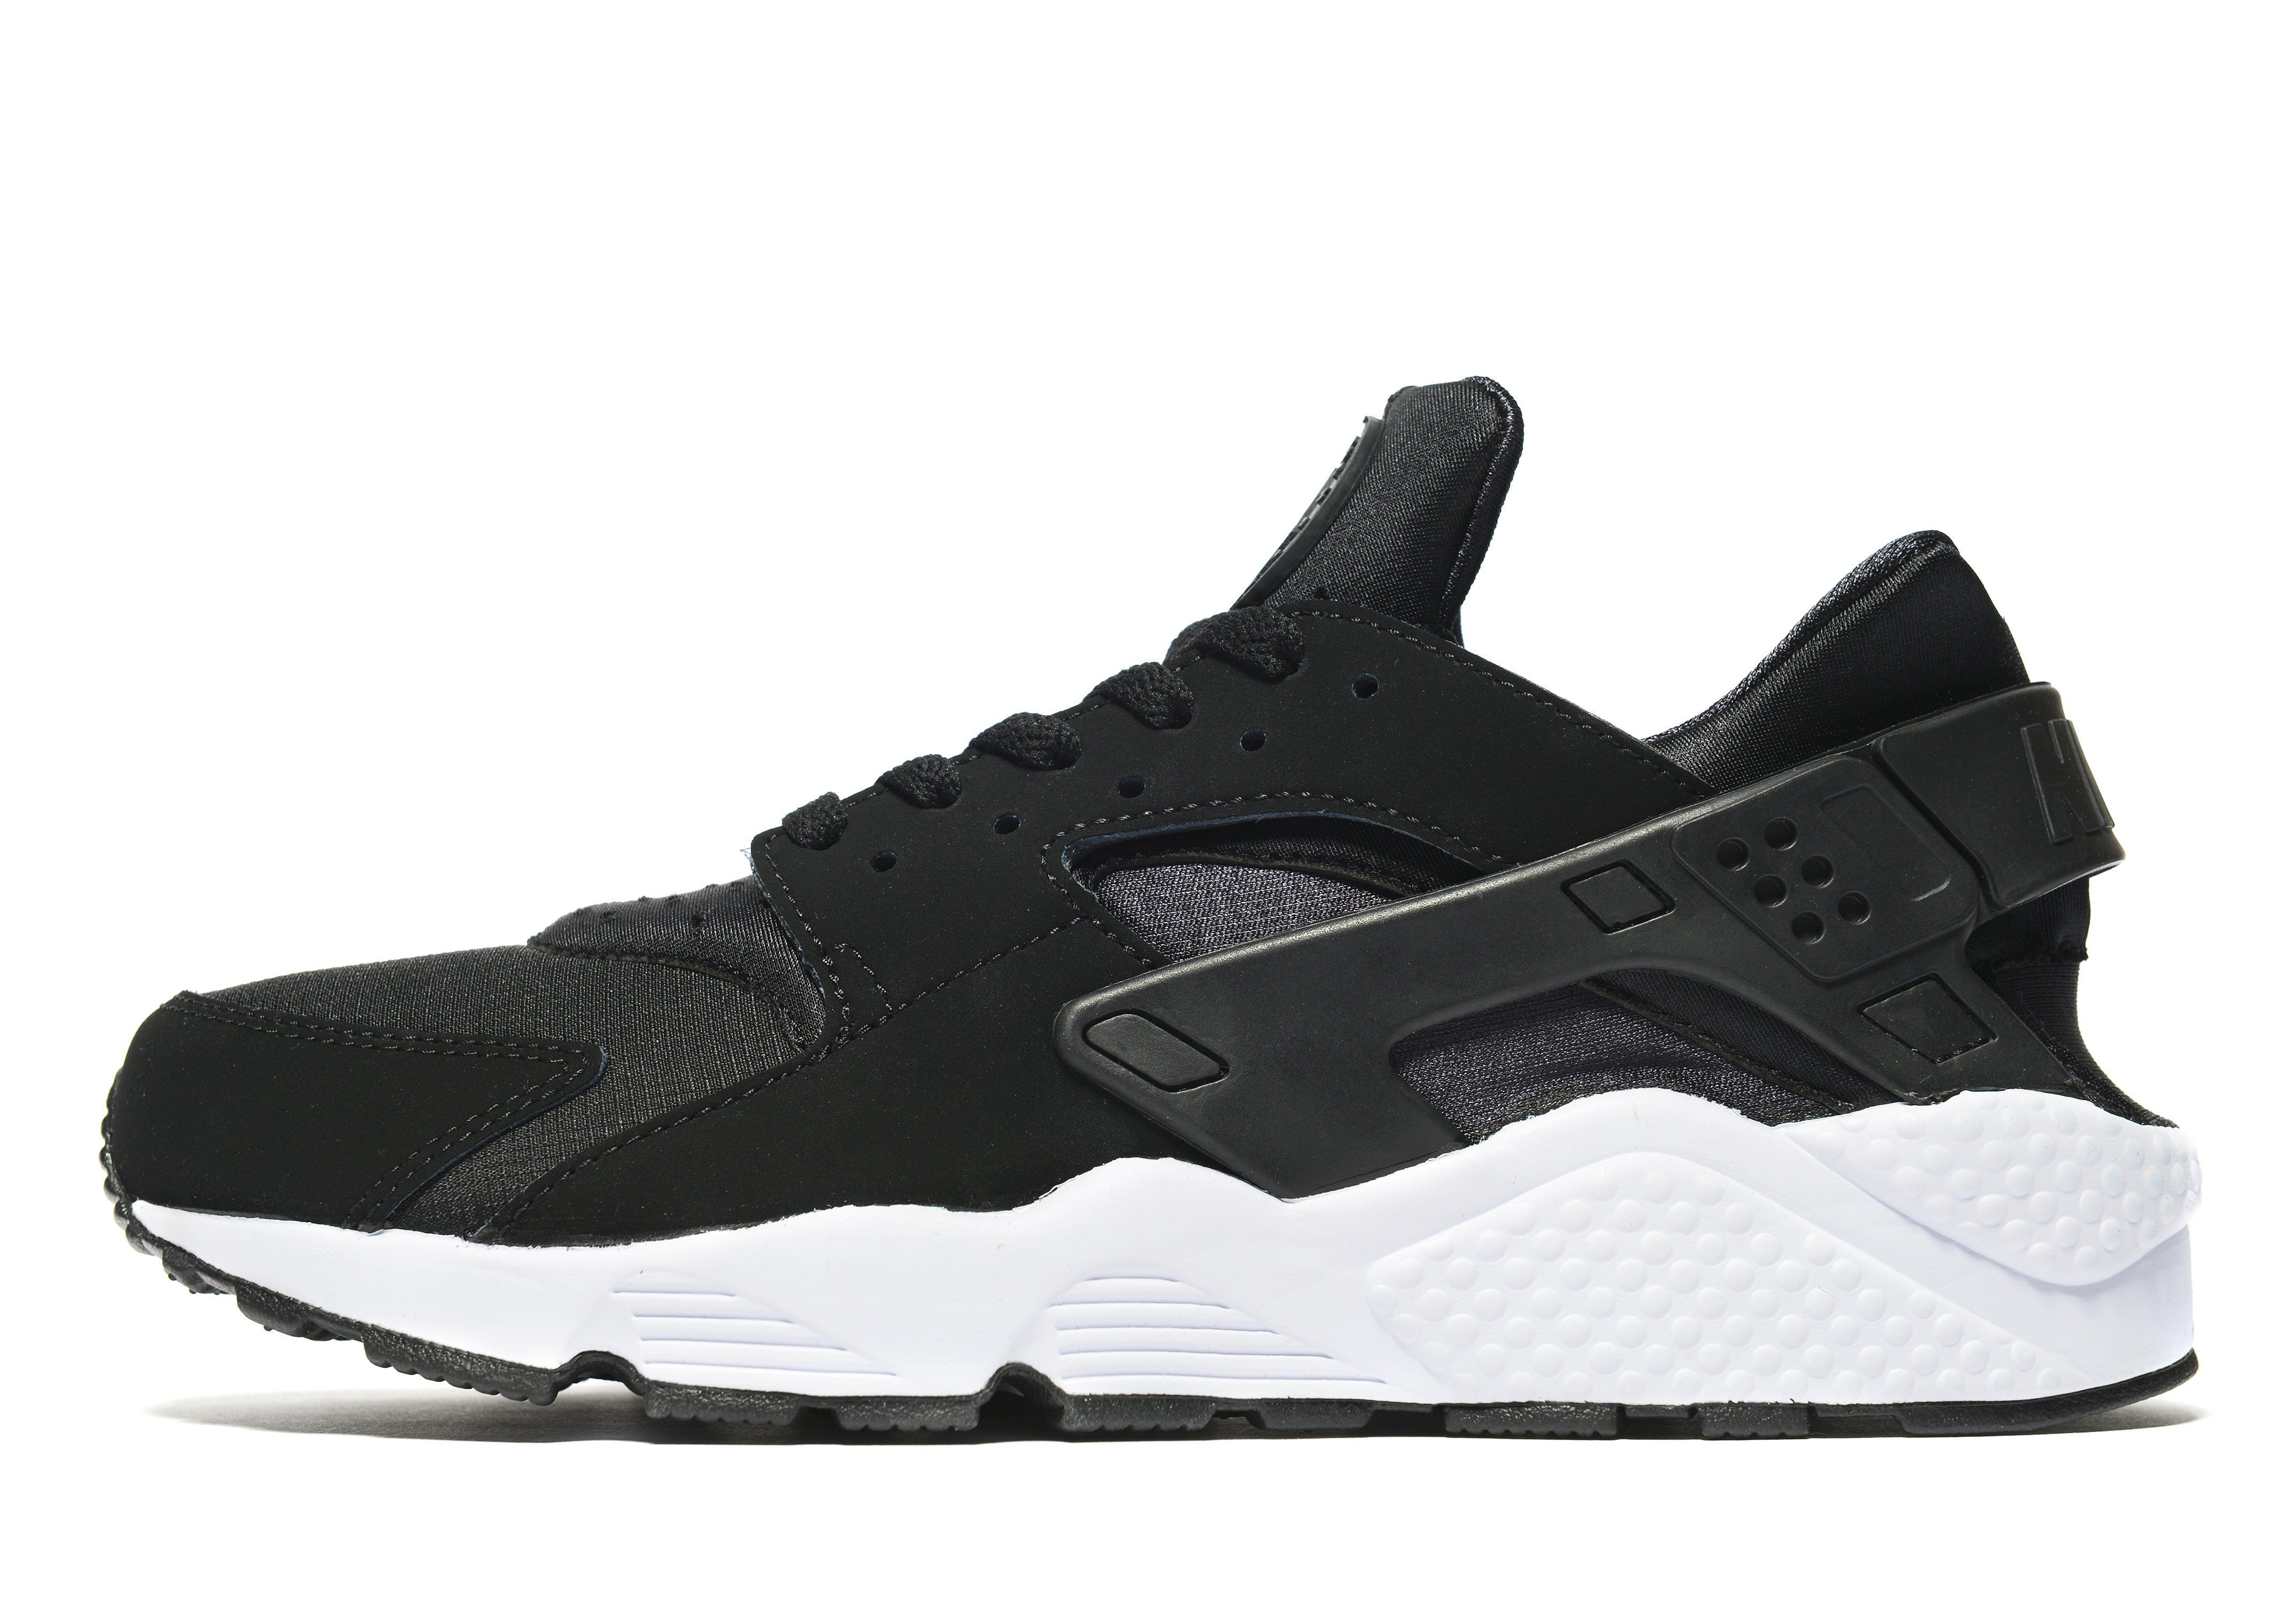 Eileen Reade on | New york fashion | Nike air huarache, Nike